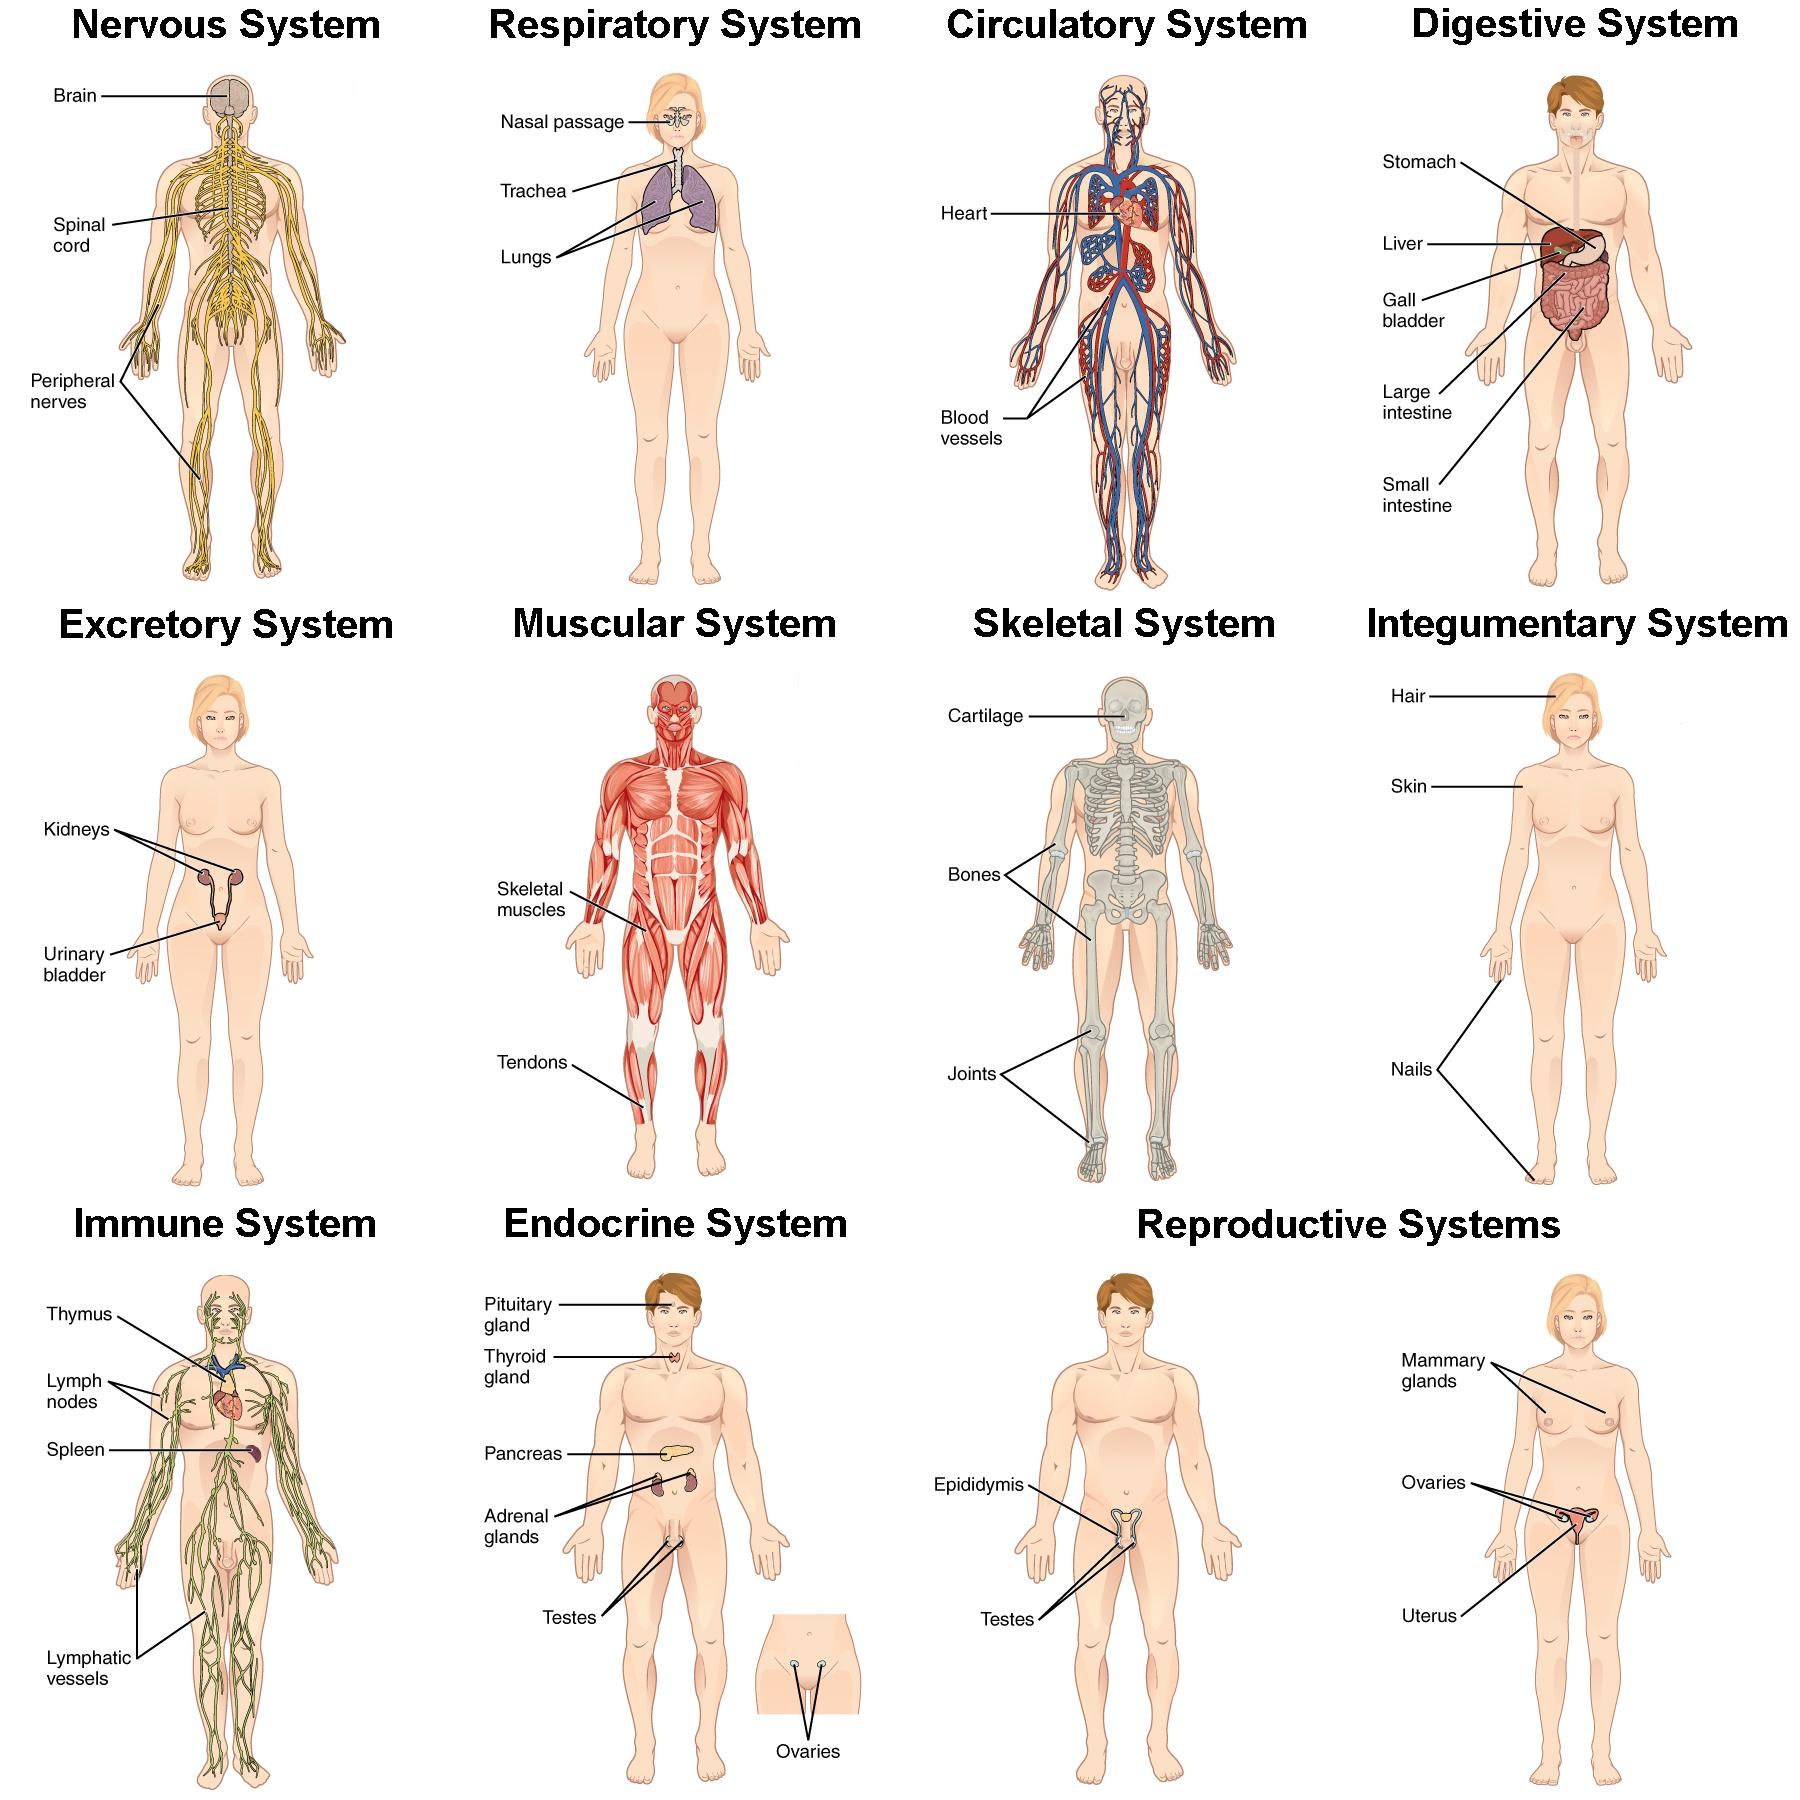 This picture shows eleven human body structures, each labeled with a specific organ system of the body and the organs that body system contains: the nervous system, the respiratory system, the circulatory system, the digestive system, the excretory system, the muscular system, the skeletal system, the integumentary system, the immune system, the endocrine system, and the reproductive system. Each of these systems, the organs that make up each system, and their basic functions are listed in Table 3.1.